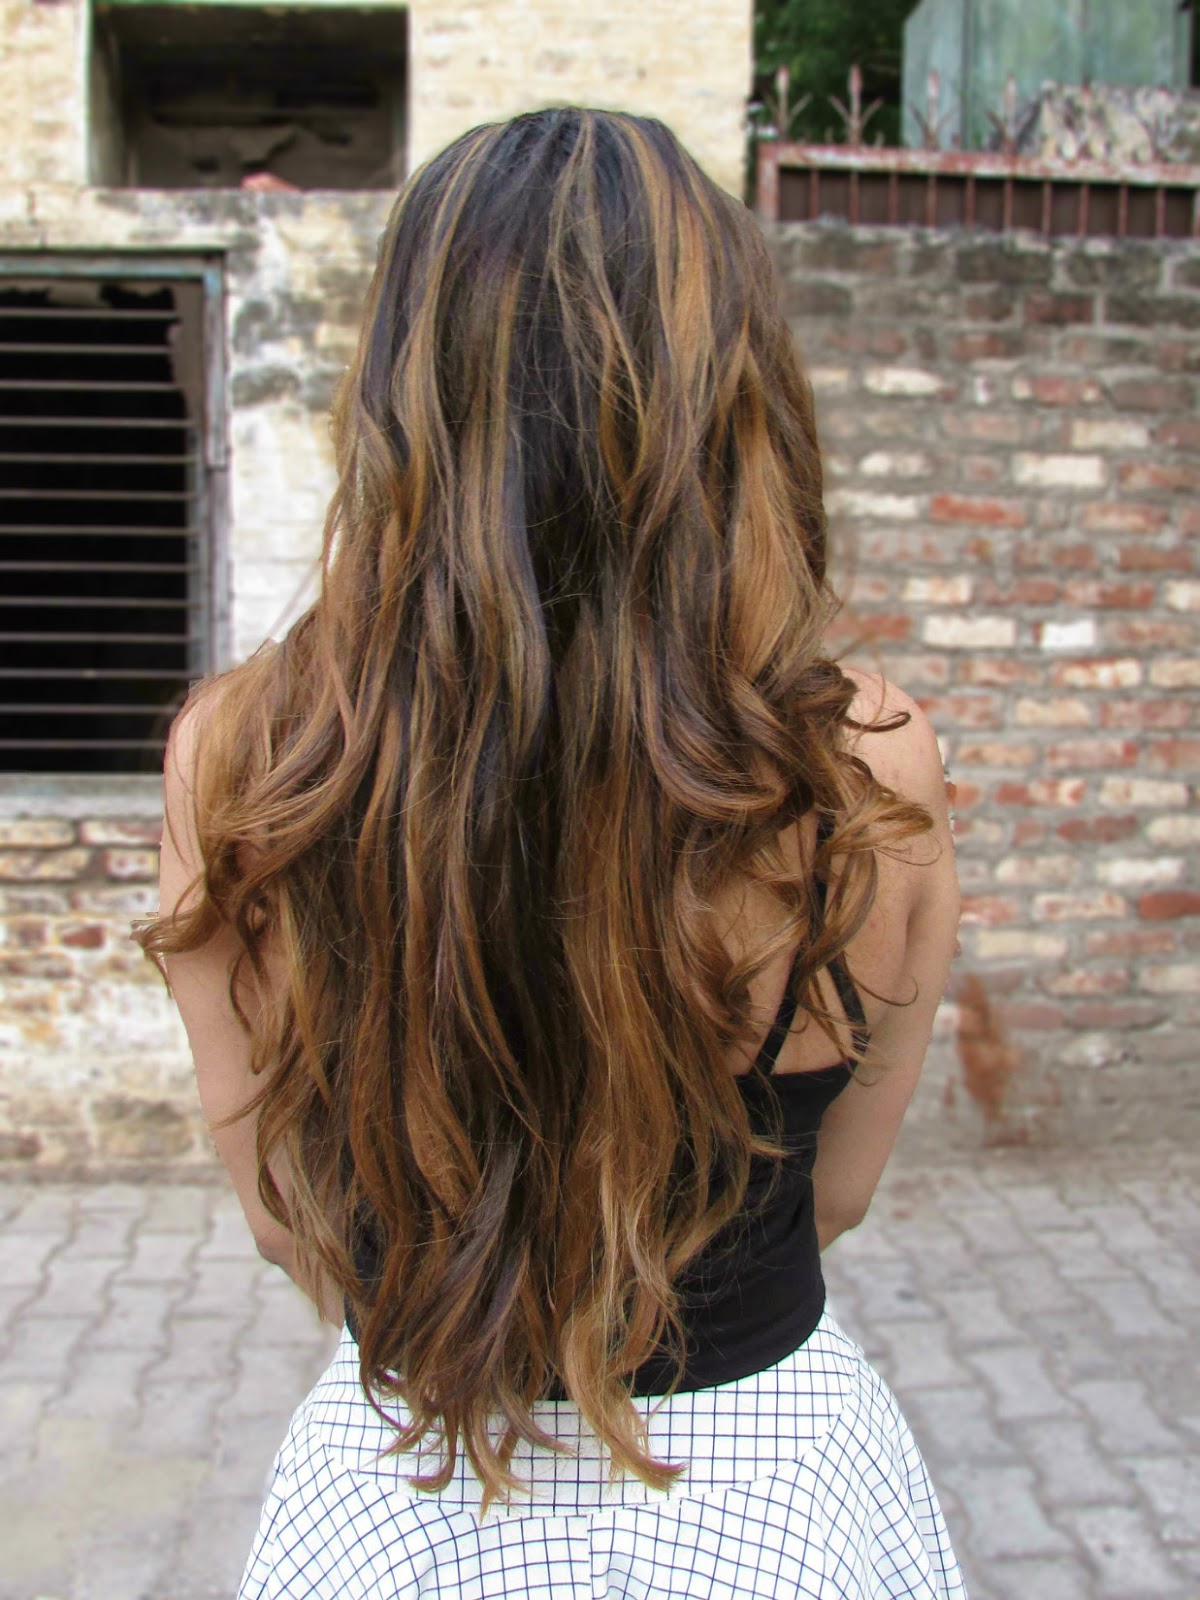 Balayage ombré, Balayage ombré for black hair,Balayage ombré Indian skintone, best hair colors for Indian skintone, ombré hair for india skintone, best hair color for Indian skintone, ombré hair india, summer hair color trends 2015, Schwarzkopf hair color, best hair color salon delhi, Balayage ombré long hair, lastest hai color for summers, Balayage ombré india, summer trends 2015,beauty , fashion,beauty and fashion,beauty blog, fashion blog , indian beauty blog,indian fashion blog, beauty and fashion blog, indian beauty and fashion blog, indian bloggers, indian beauty bloggers, indian fashion bloggers,indian bloggers online, top 10 indian bloggers, top indian bloggers,top 10 fashion bloggers, indian bloggers on blogspot,home remedies, how to